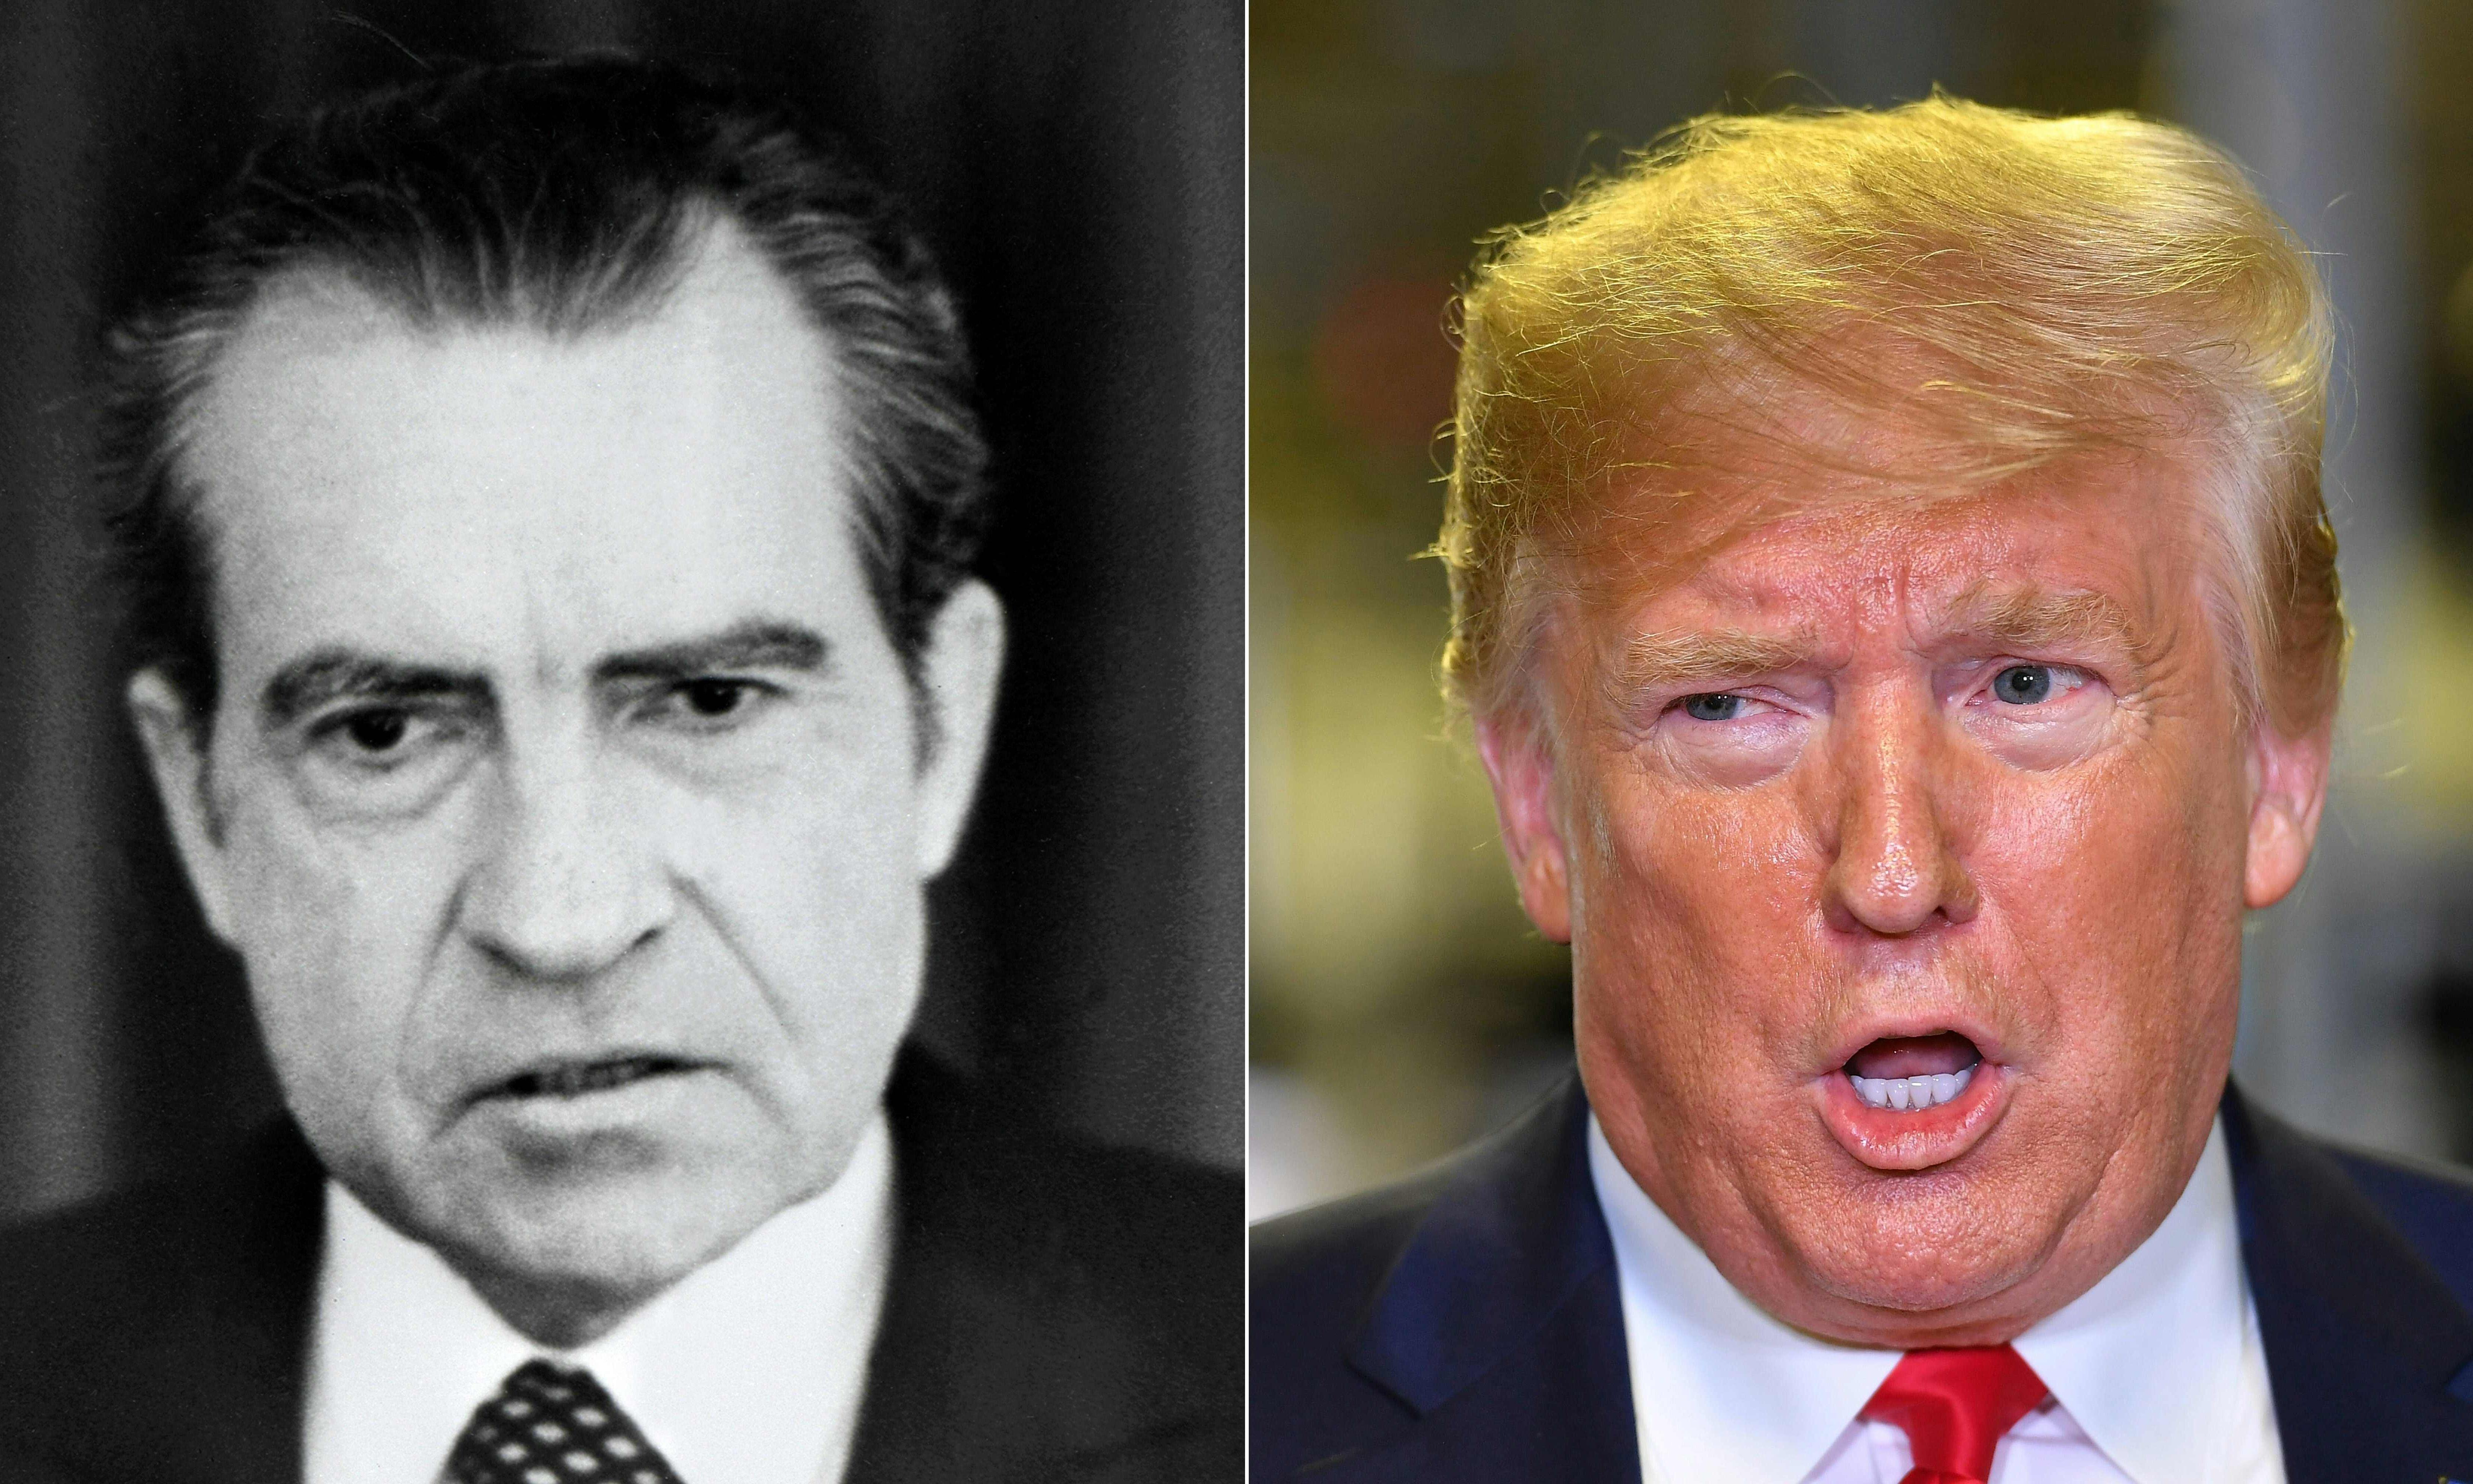 In his assault on justice, Trump has out-Nixoned Nixon